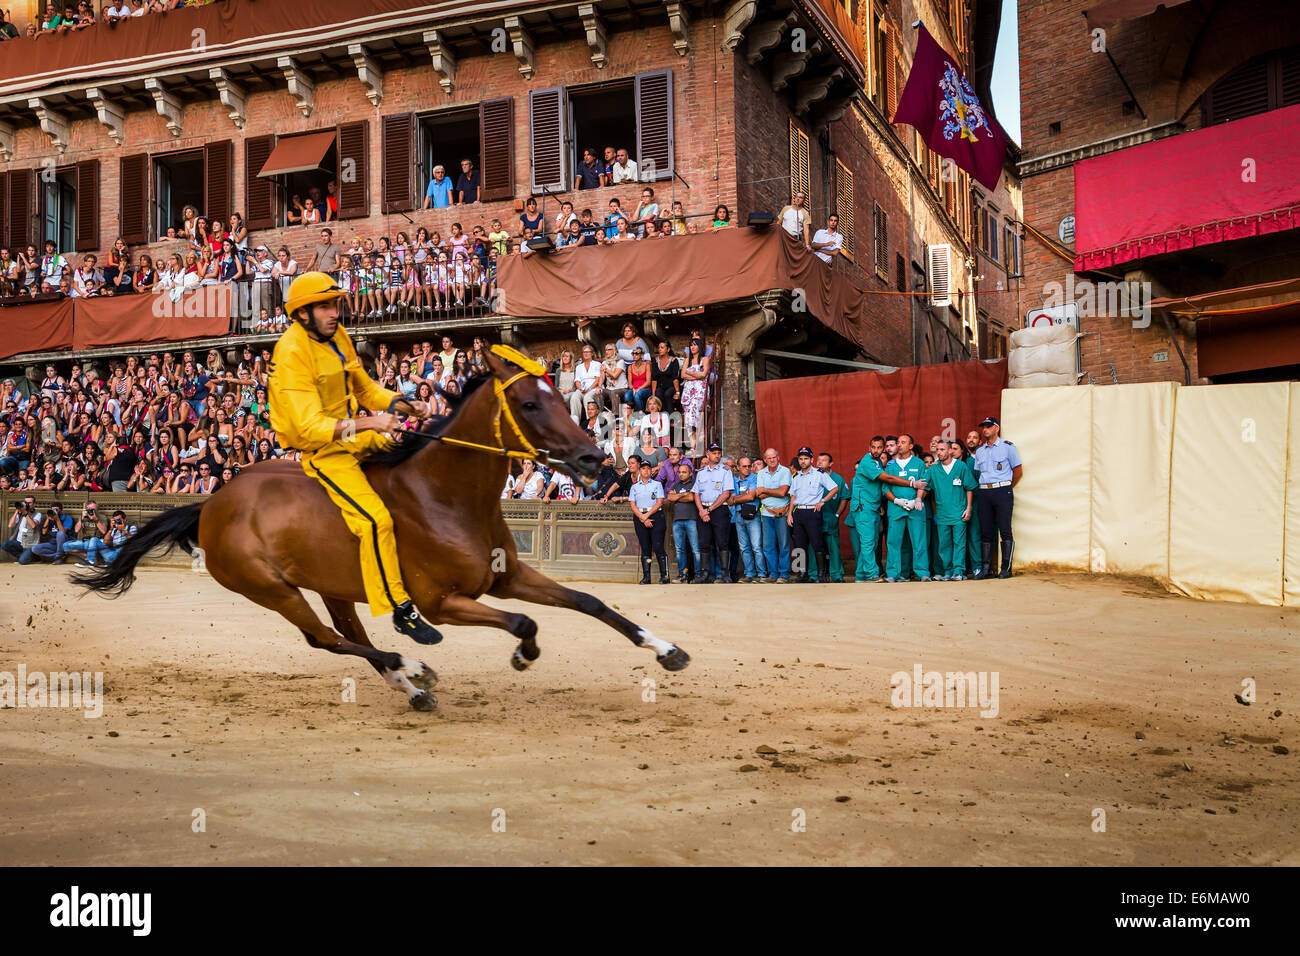 The Palio di Siena horse race on Piazza del Campo, Siena, Tuscany, Italy - Stock Image